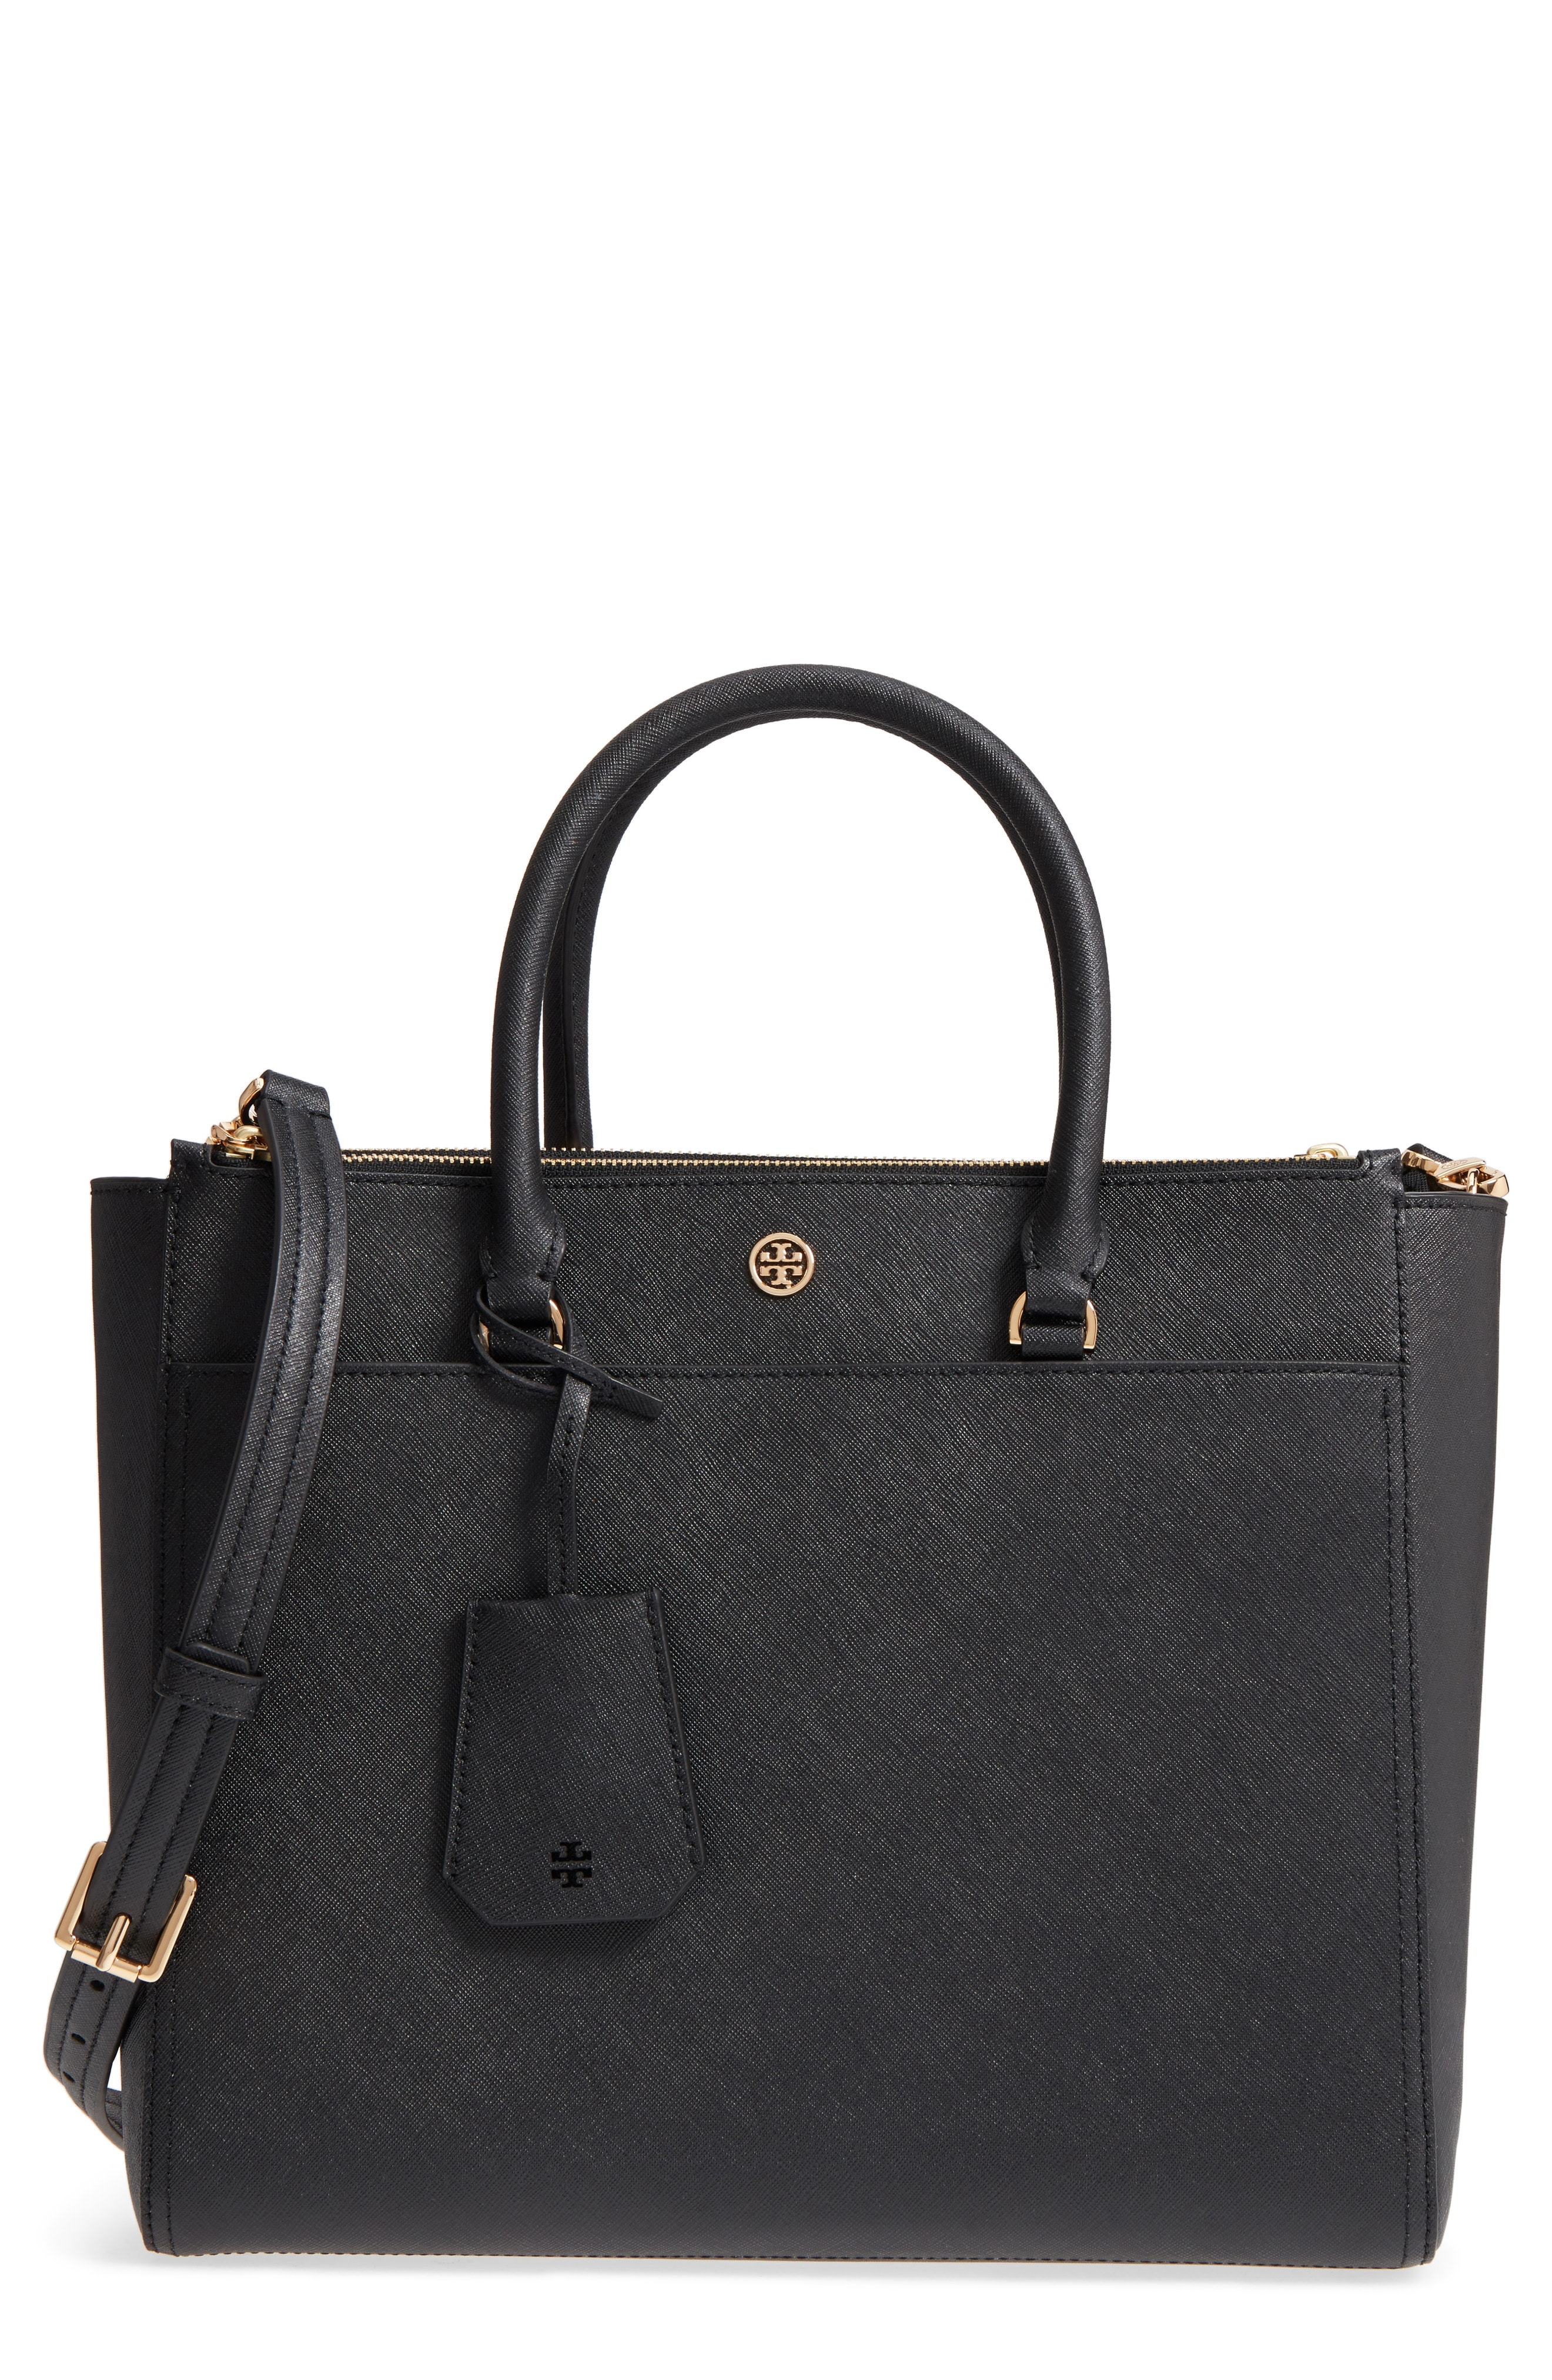 Tory Burch Robinson Double-Zip Leather Tote